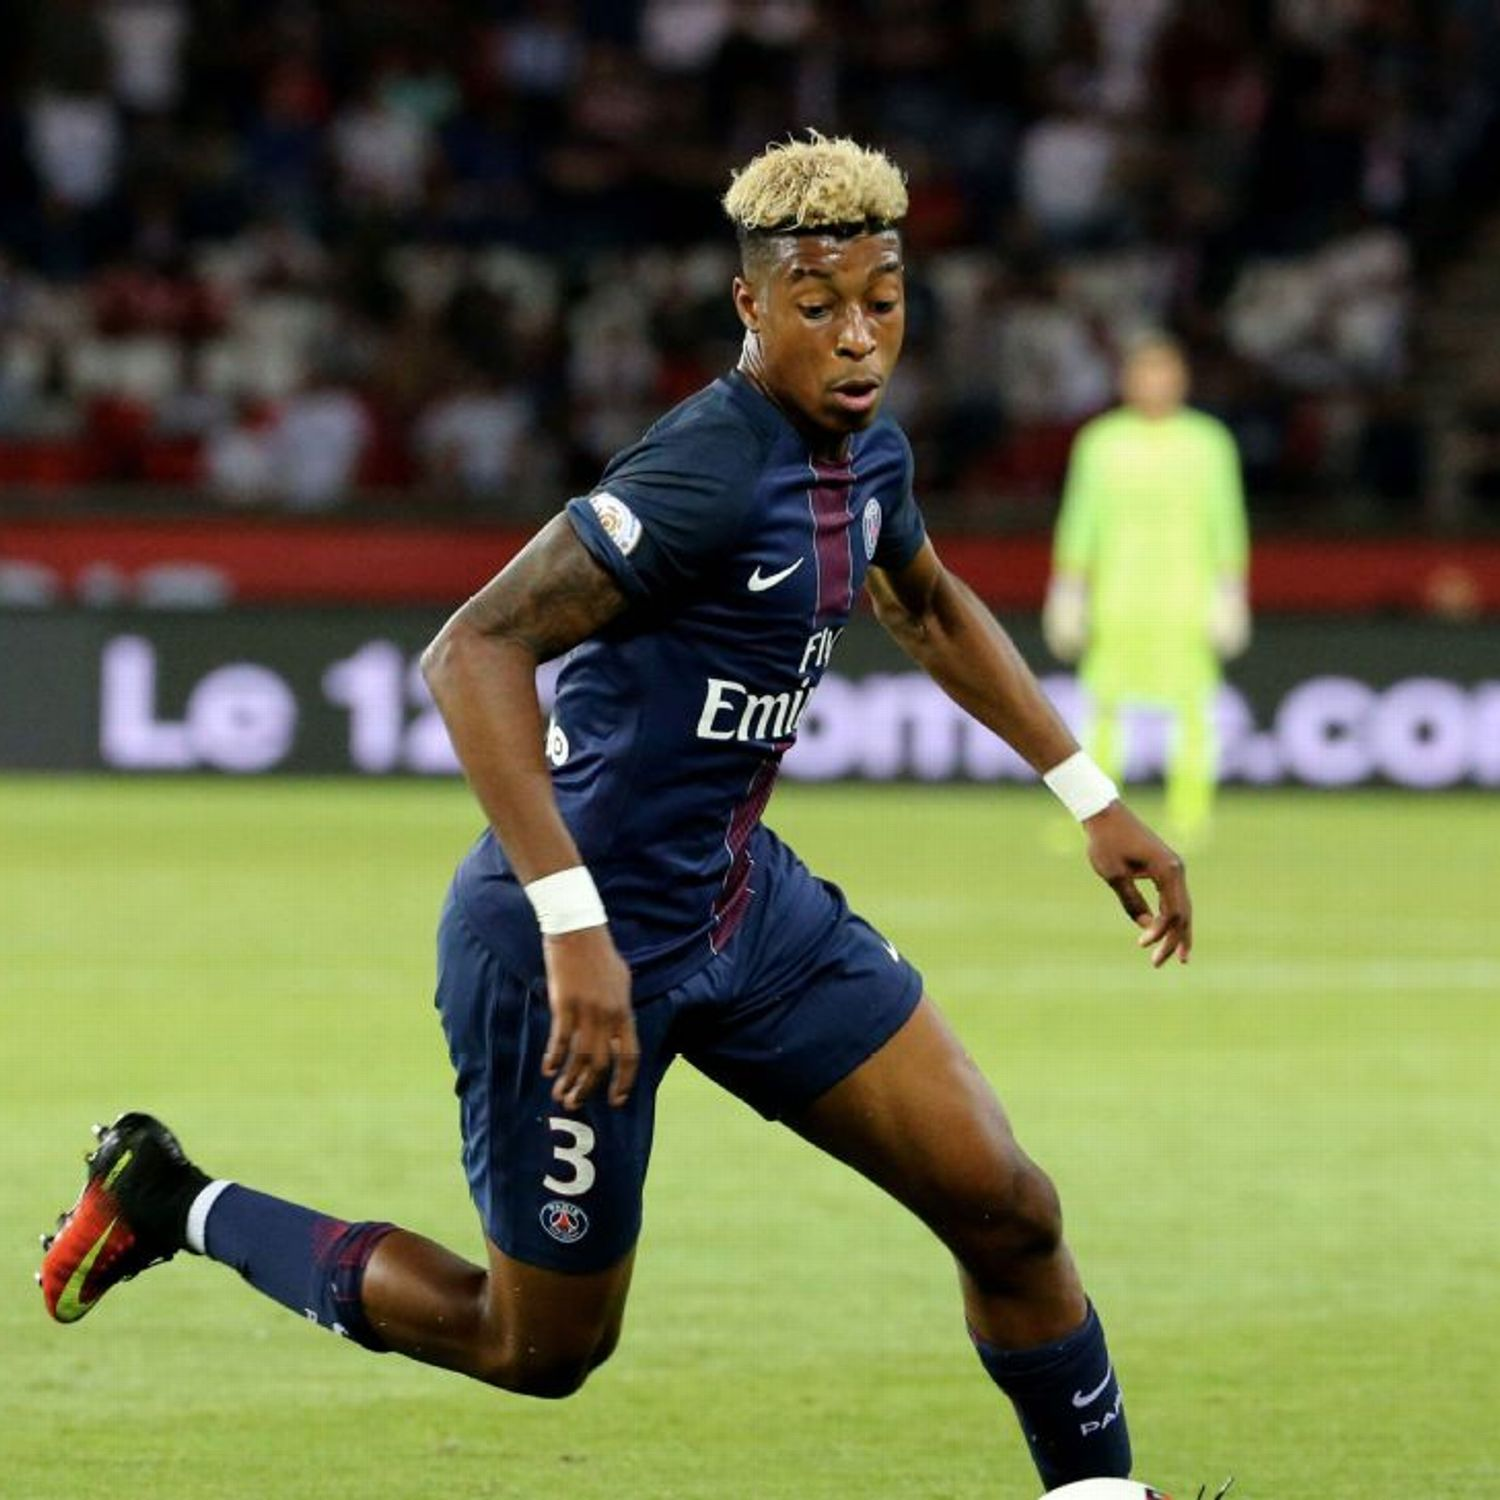 Bastia 0 3 Psg Match Report: Paris Saint-Germain Could Give Youth More Of A Push